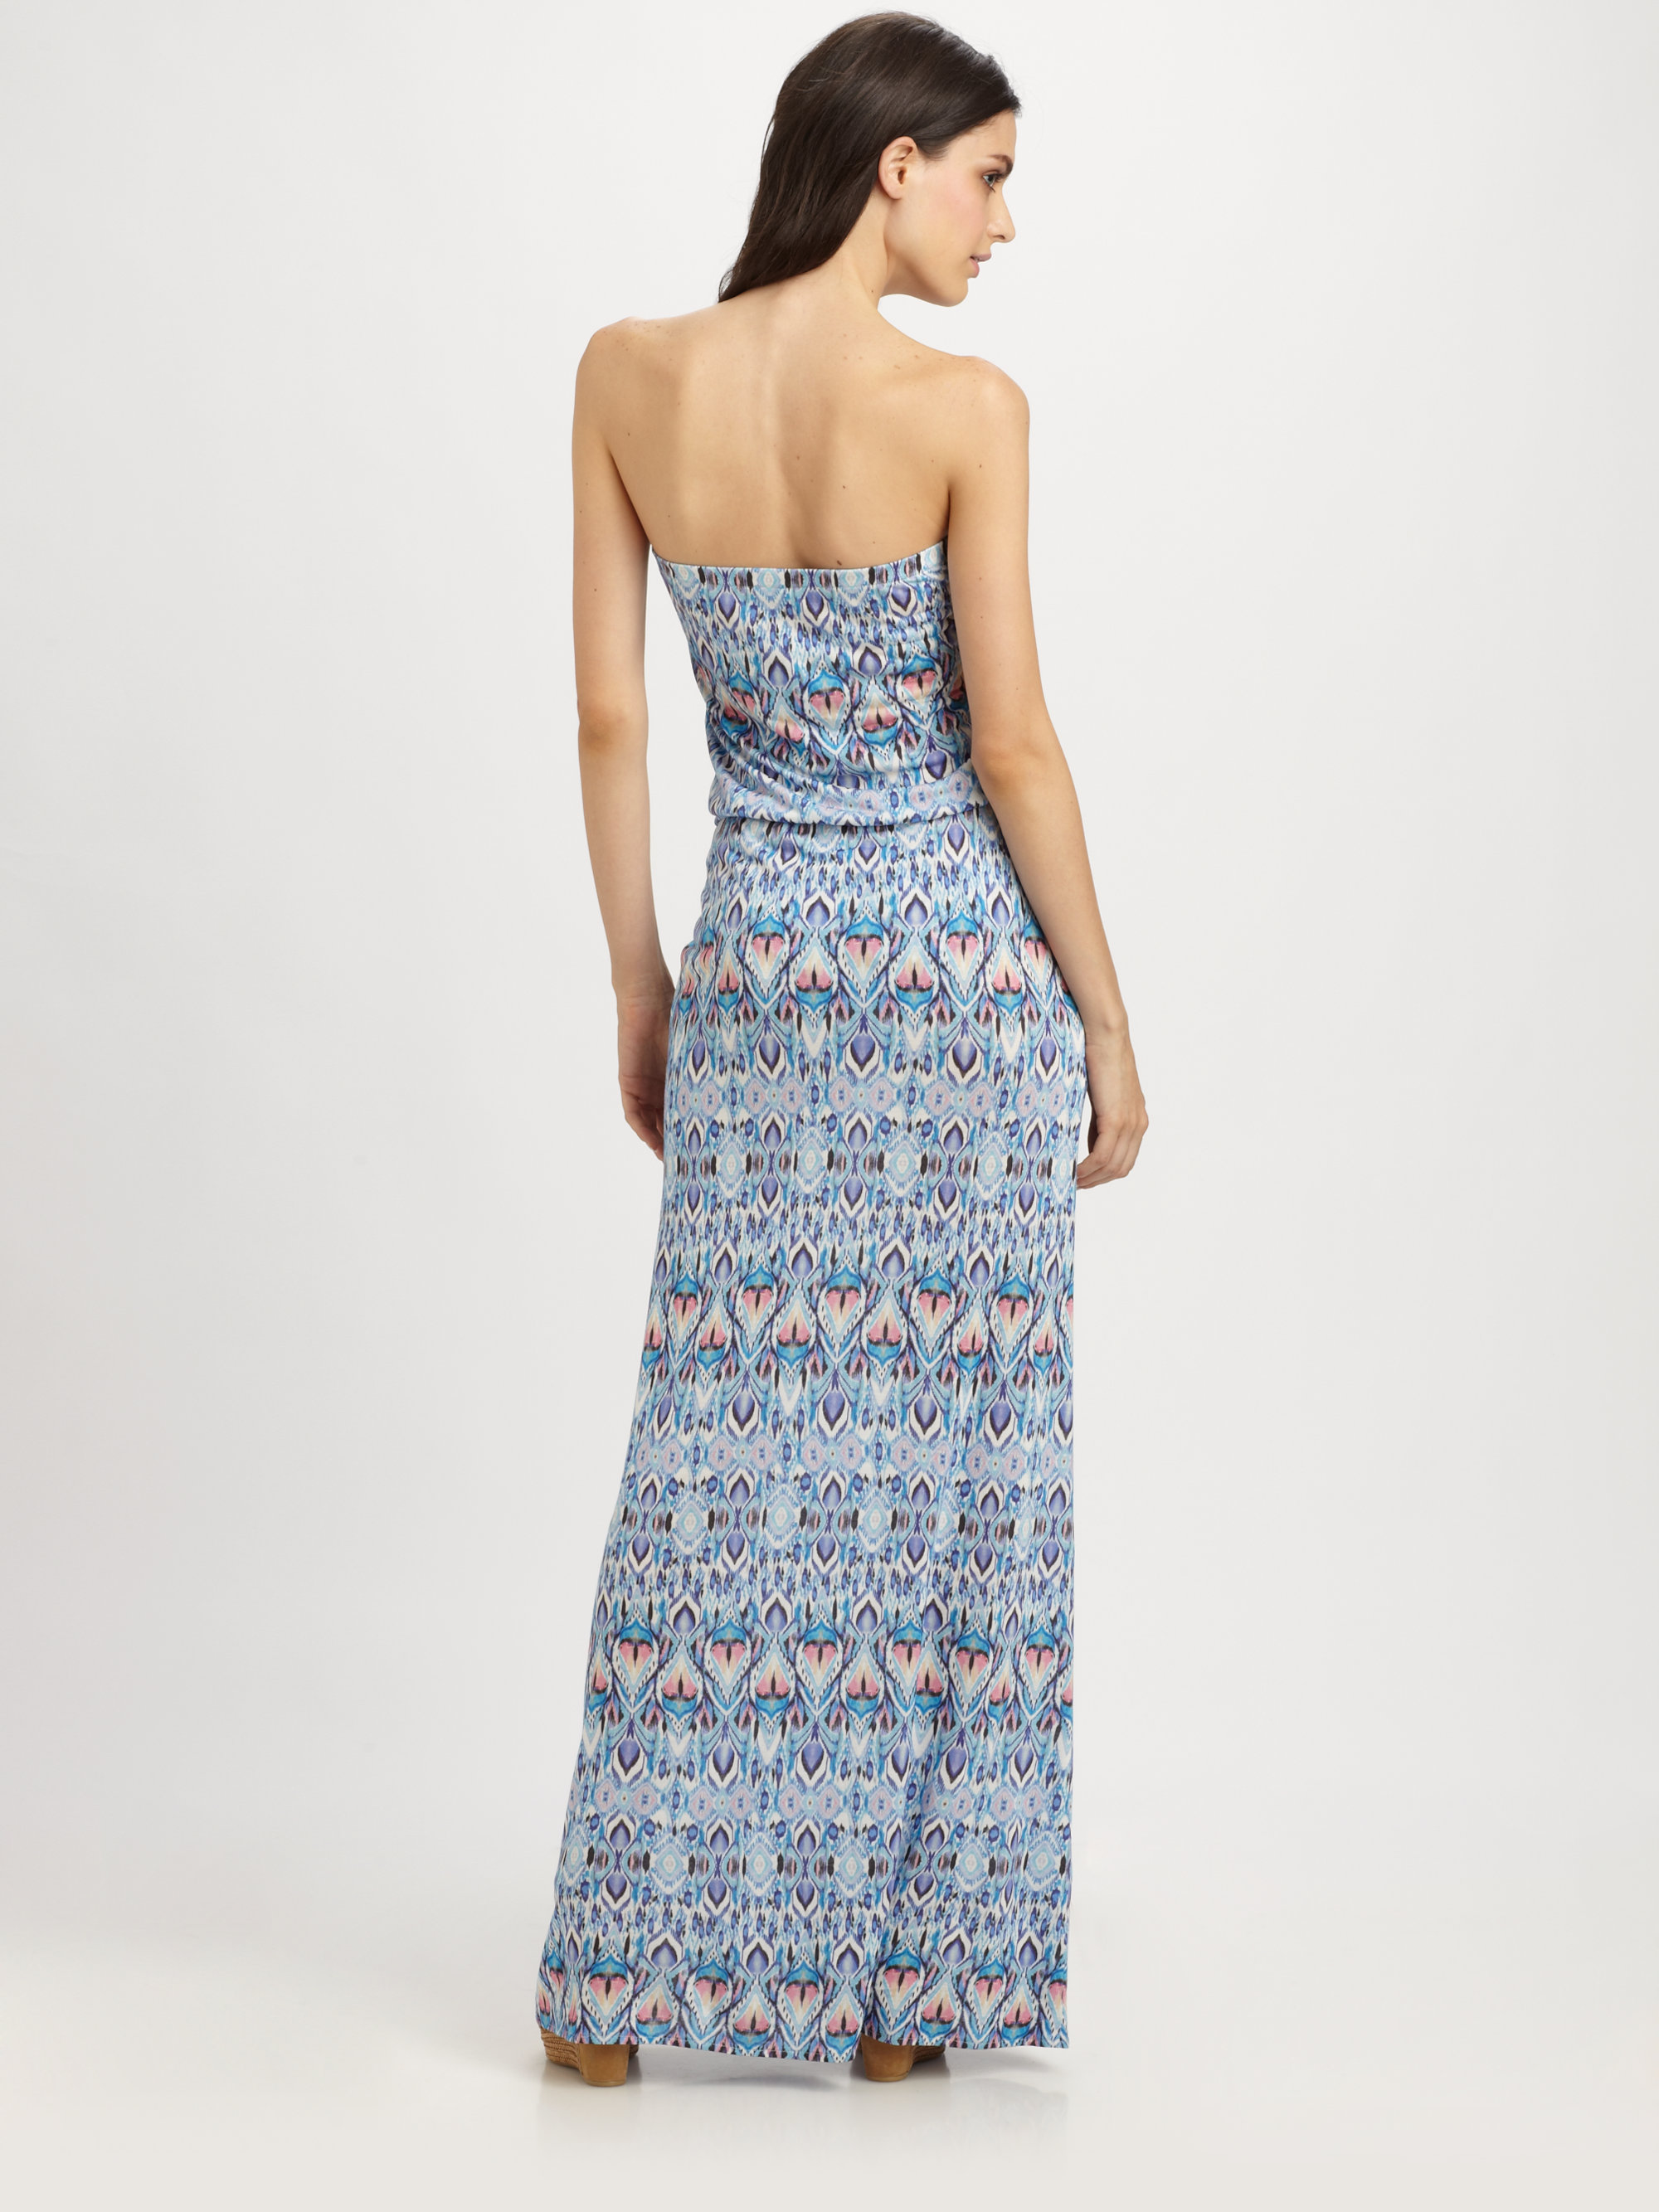 Melissa odabash Printed Strapless Maxi Dress in Blue - Lyst